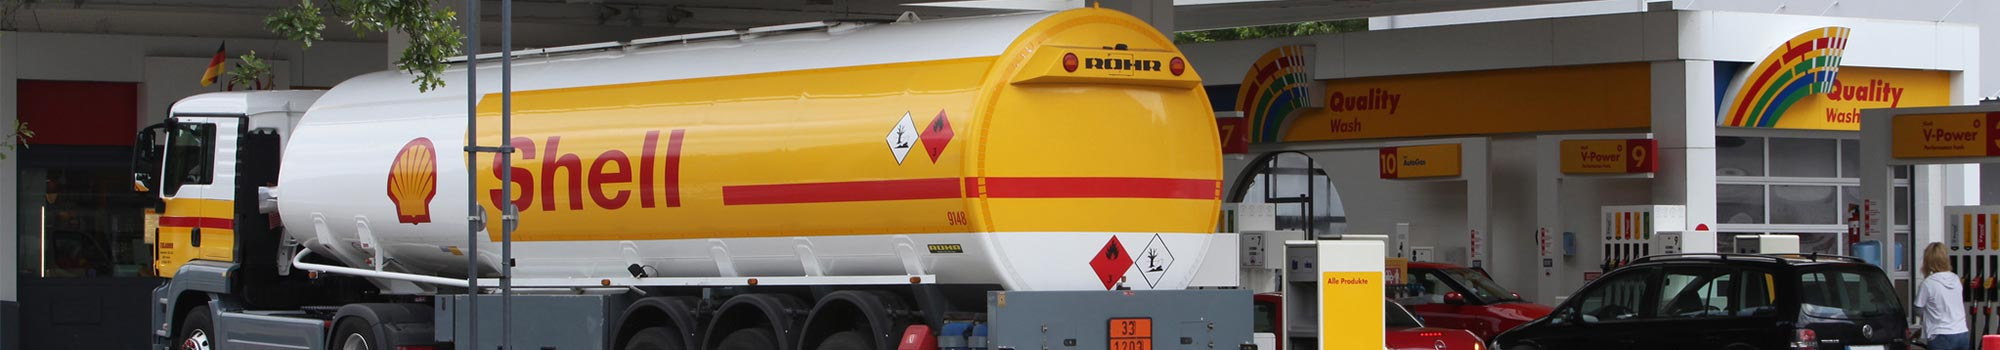 Umfirmierung: Aus First Utility GmbH wird Shell PrivatEnergie GmBH | Shell Pensionäre